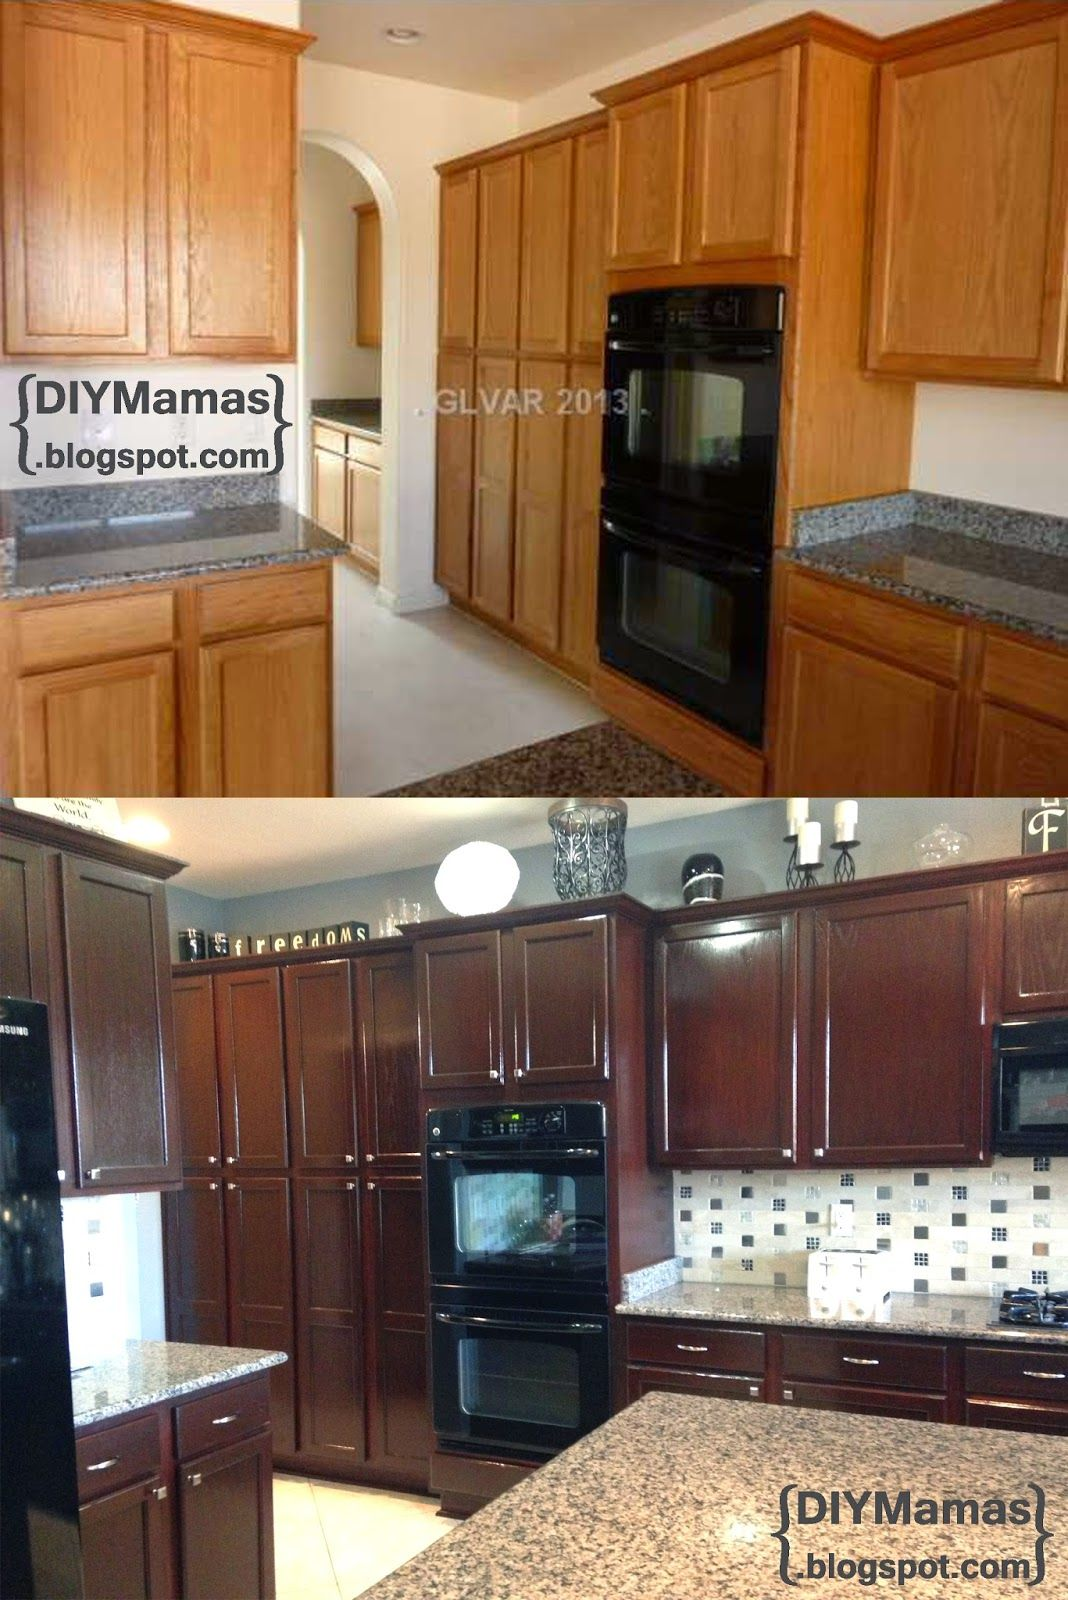 how to restain kitchen cabinets yourself diy mamas kitchen makeover gel stain backsplash 17370